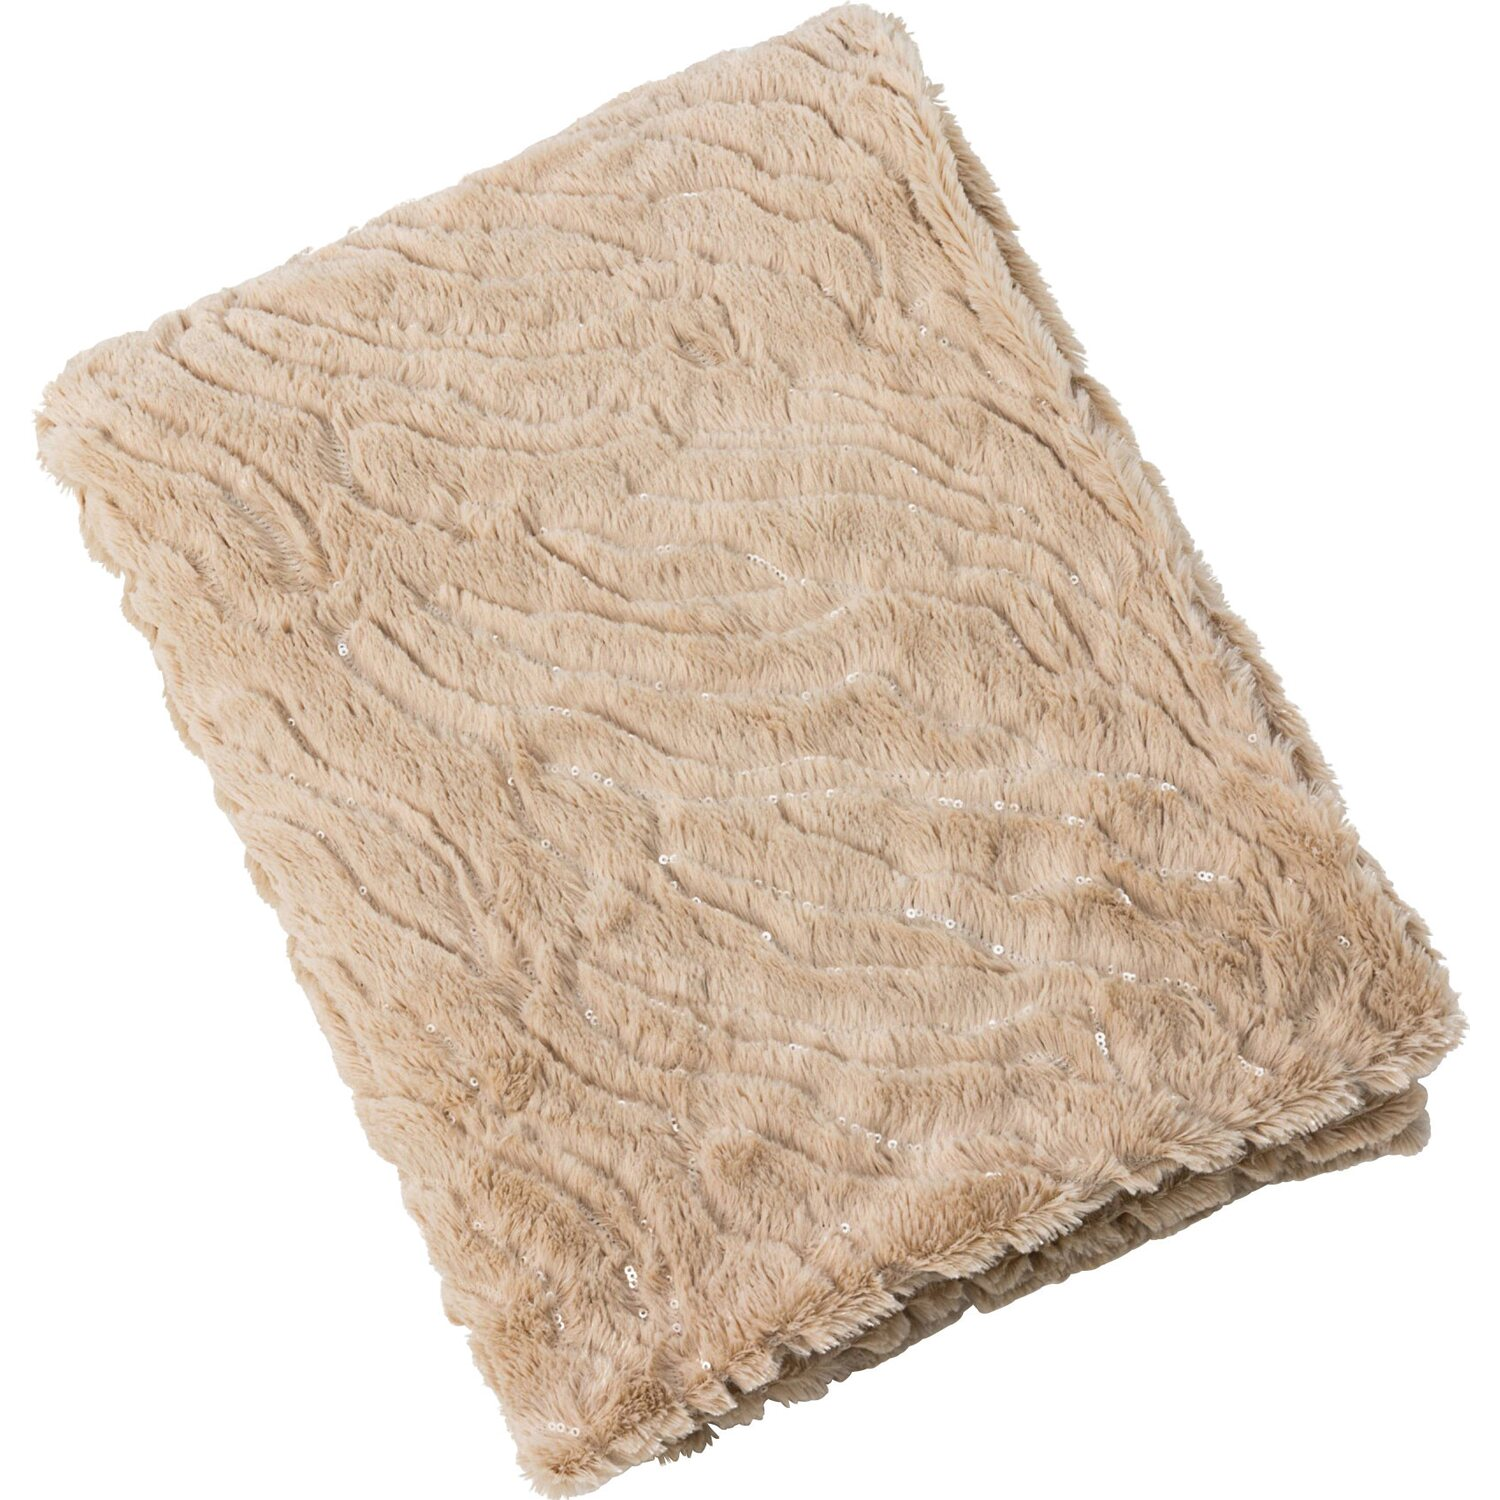 best of home Best of home Wohndecke mit Pailletten 130 cm x 170 cm Taupe